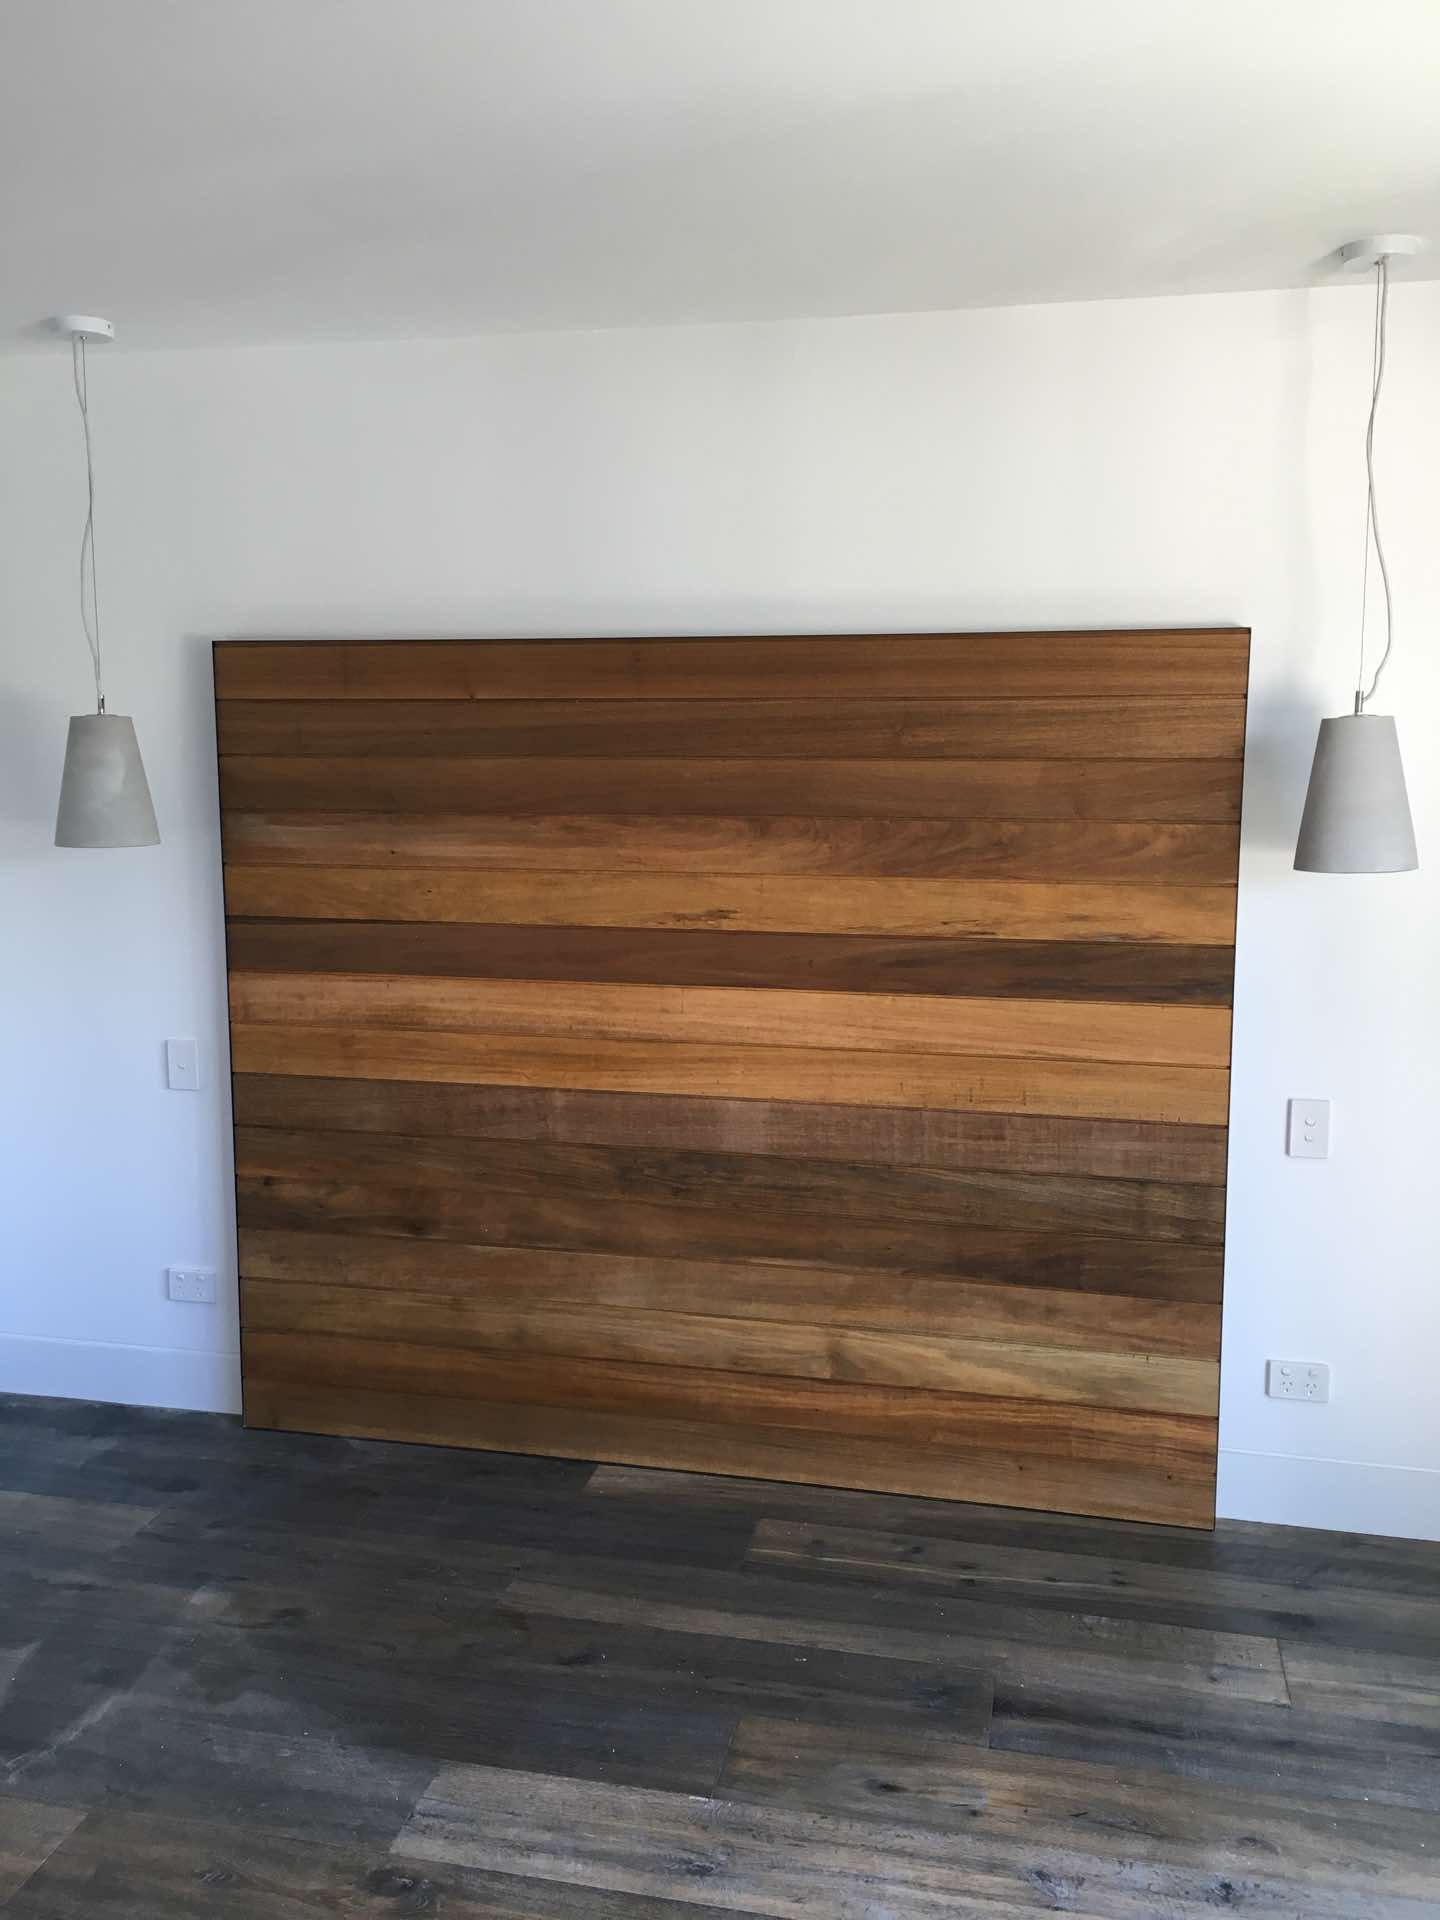 Teak bed head with black aluminum angle surround   North Curl Curl, NSW